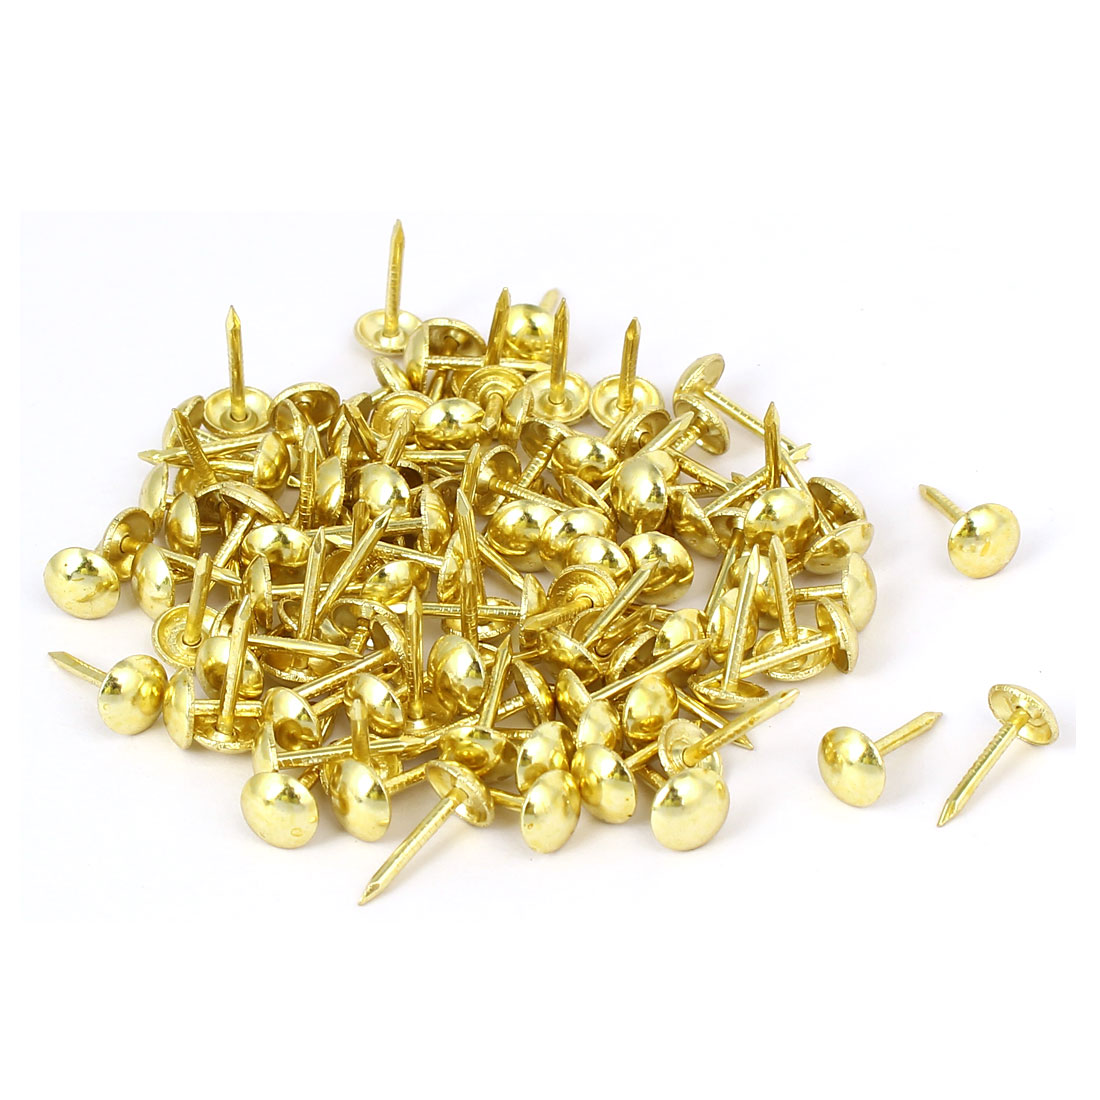 Leather Sofa Round Head Upholstery Tack Nail Push Pin Gold Tone 7mmx14mm 100pcs